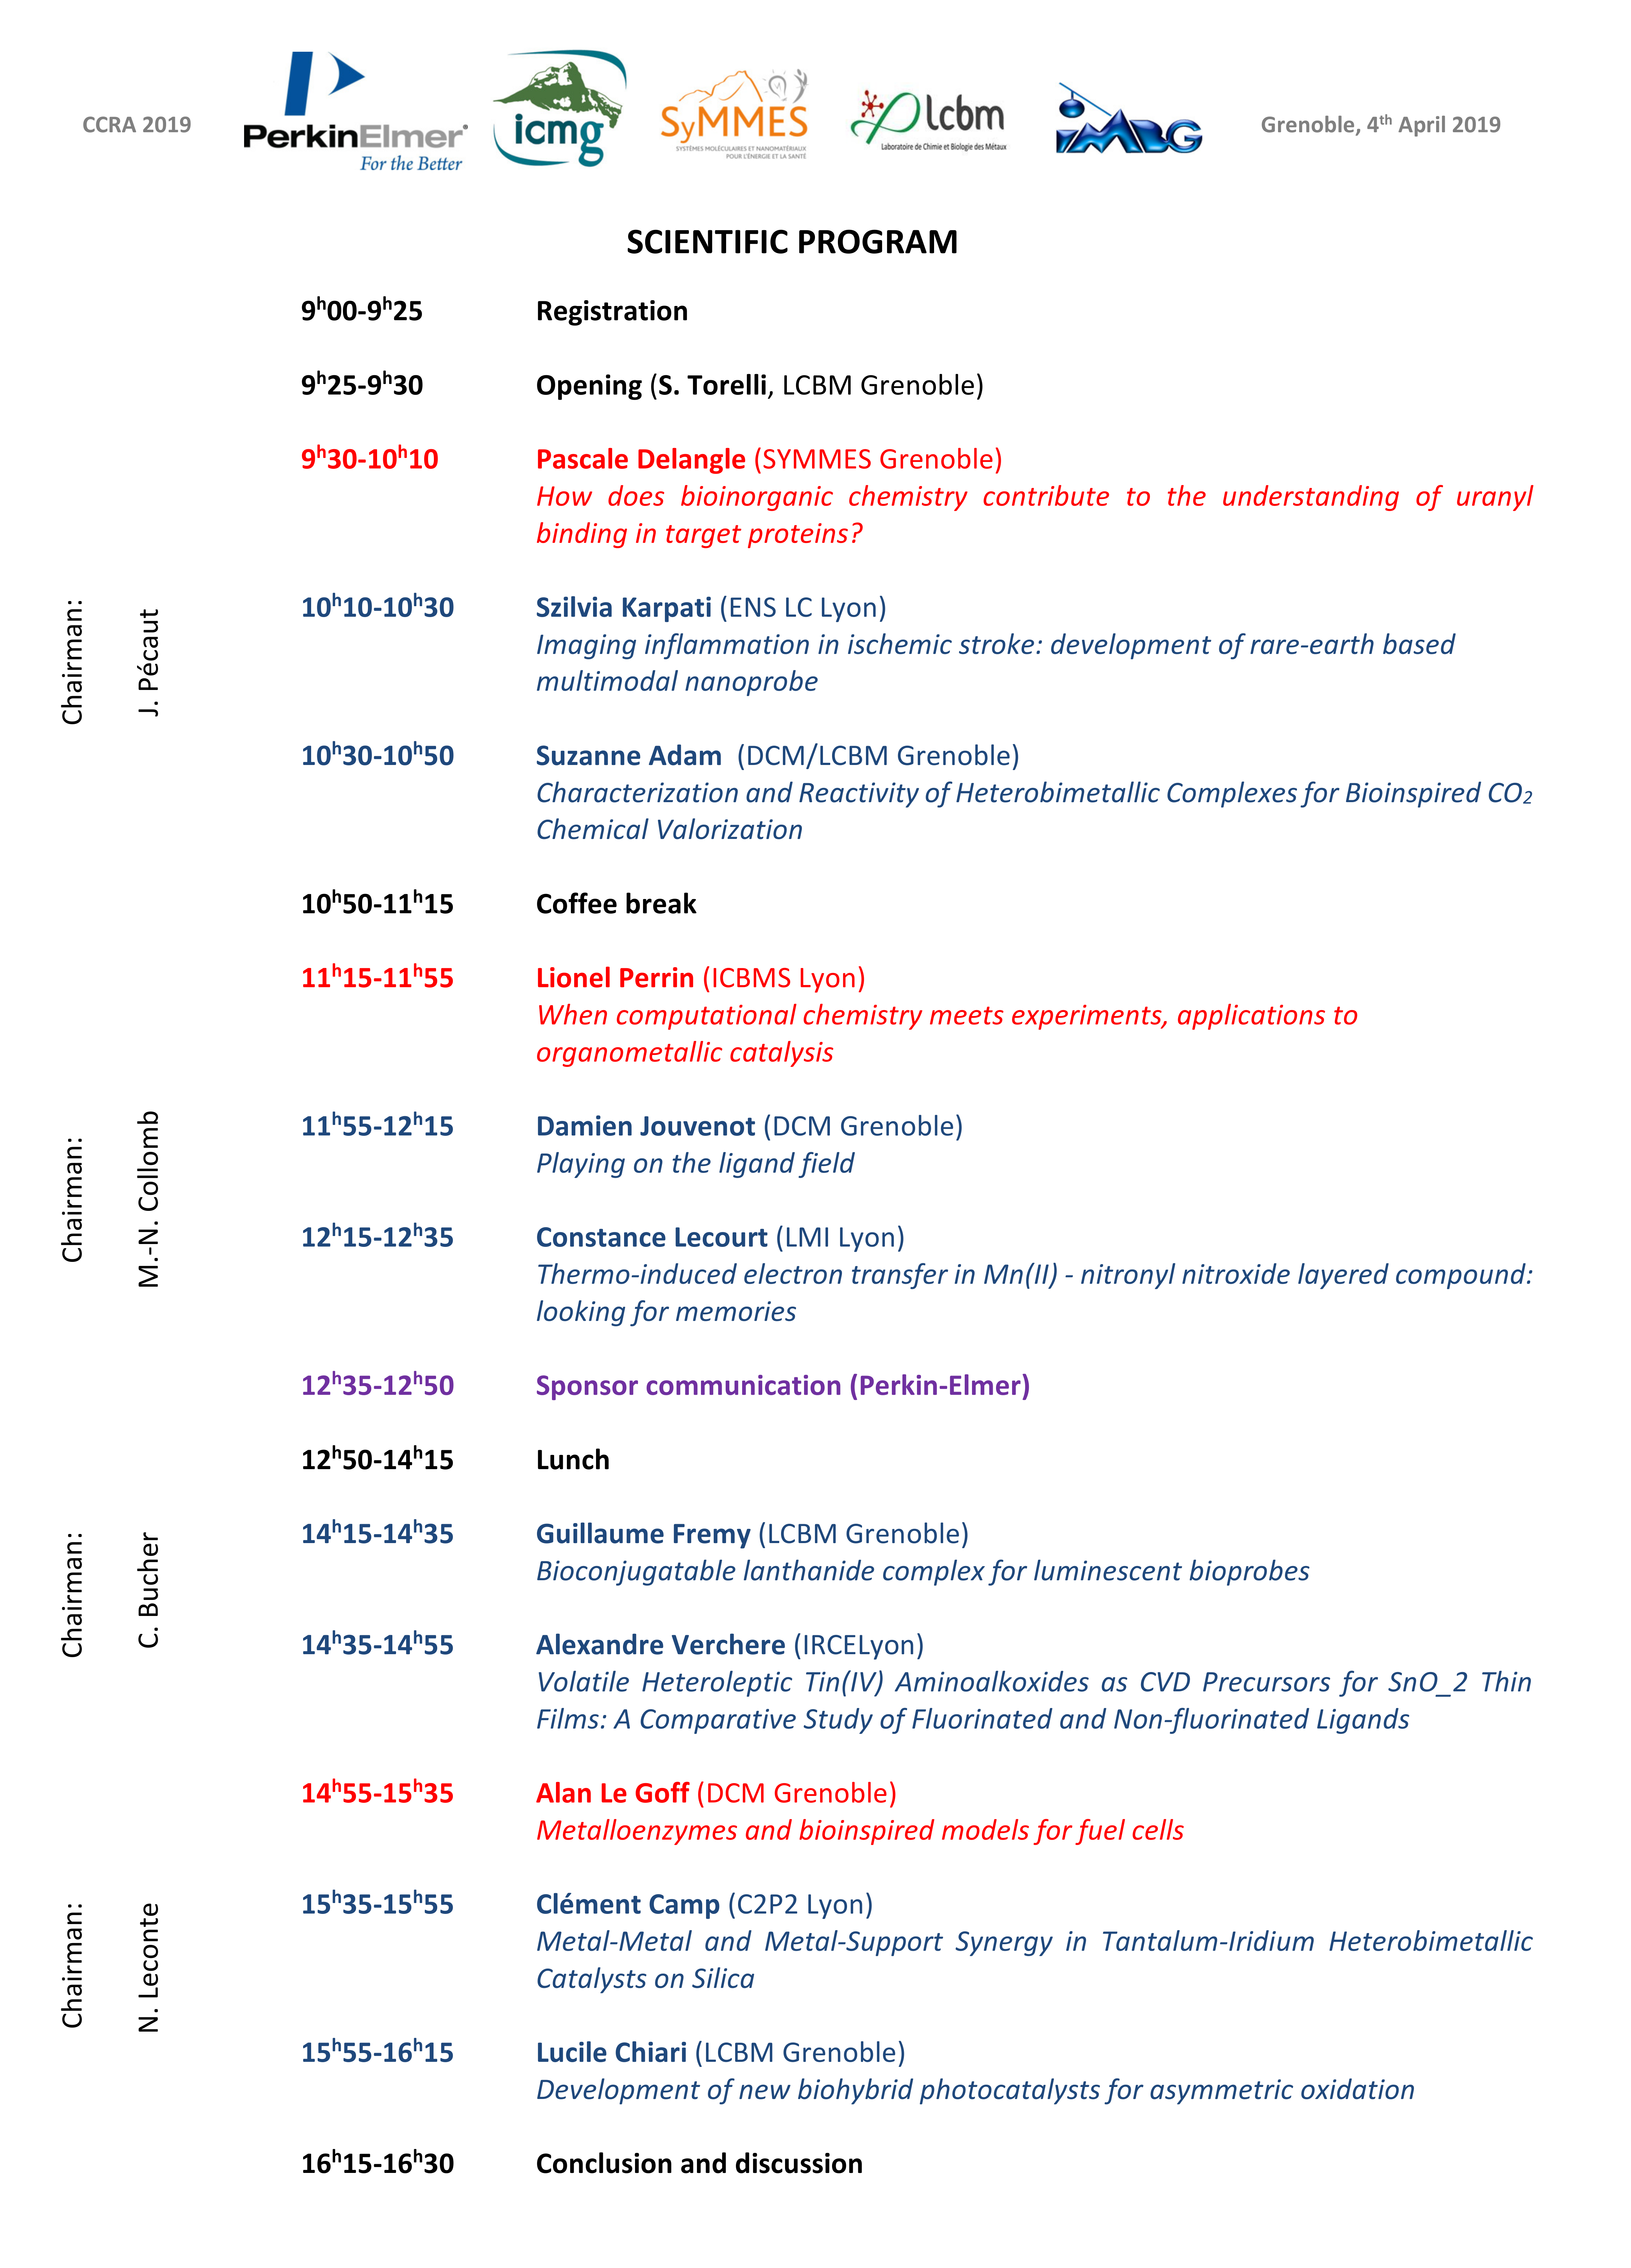 programme_CCRA_2019.png